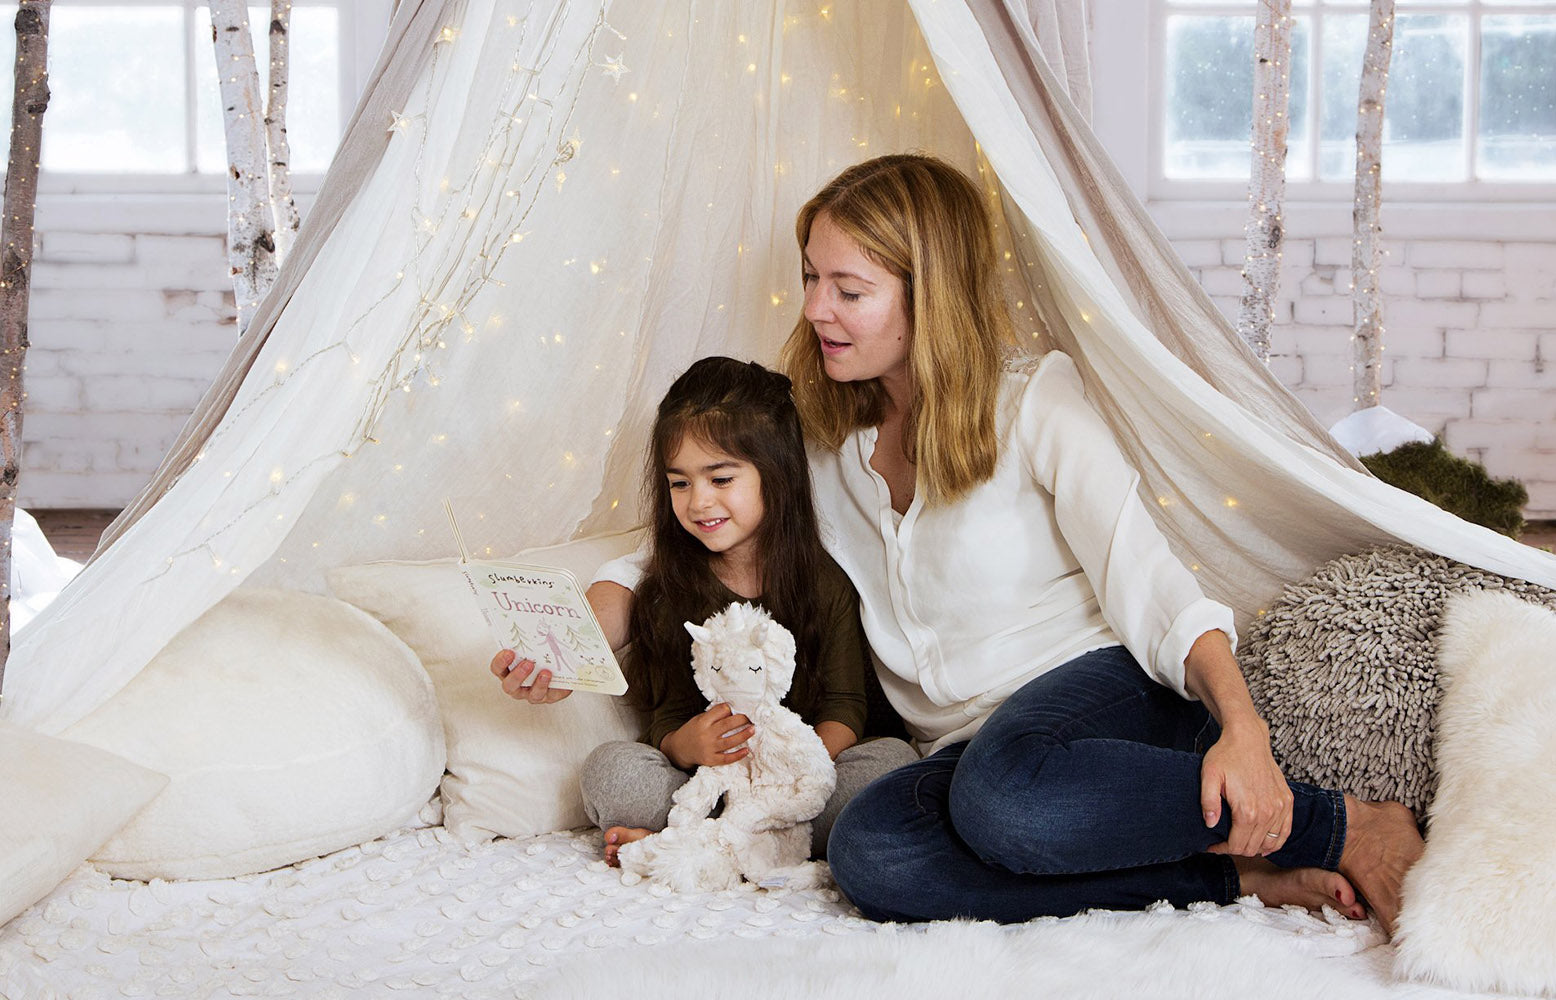 Mom and daughter reading a book in a winter wonderland